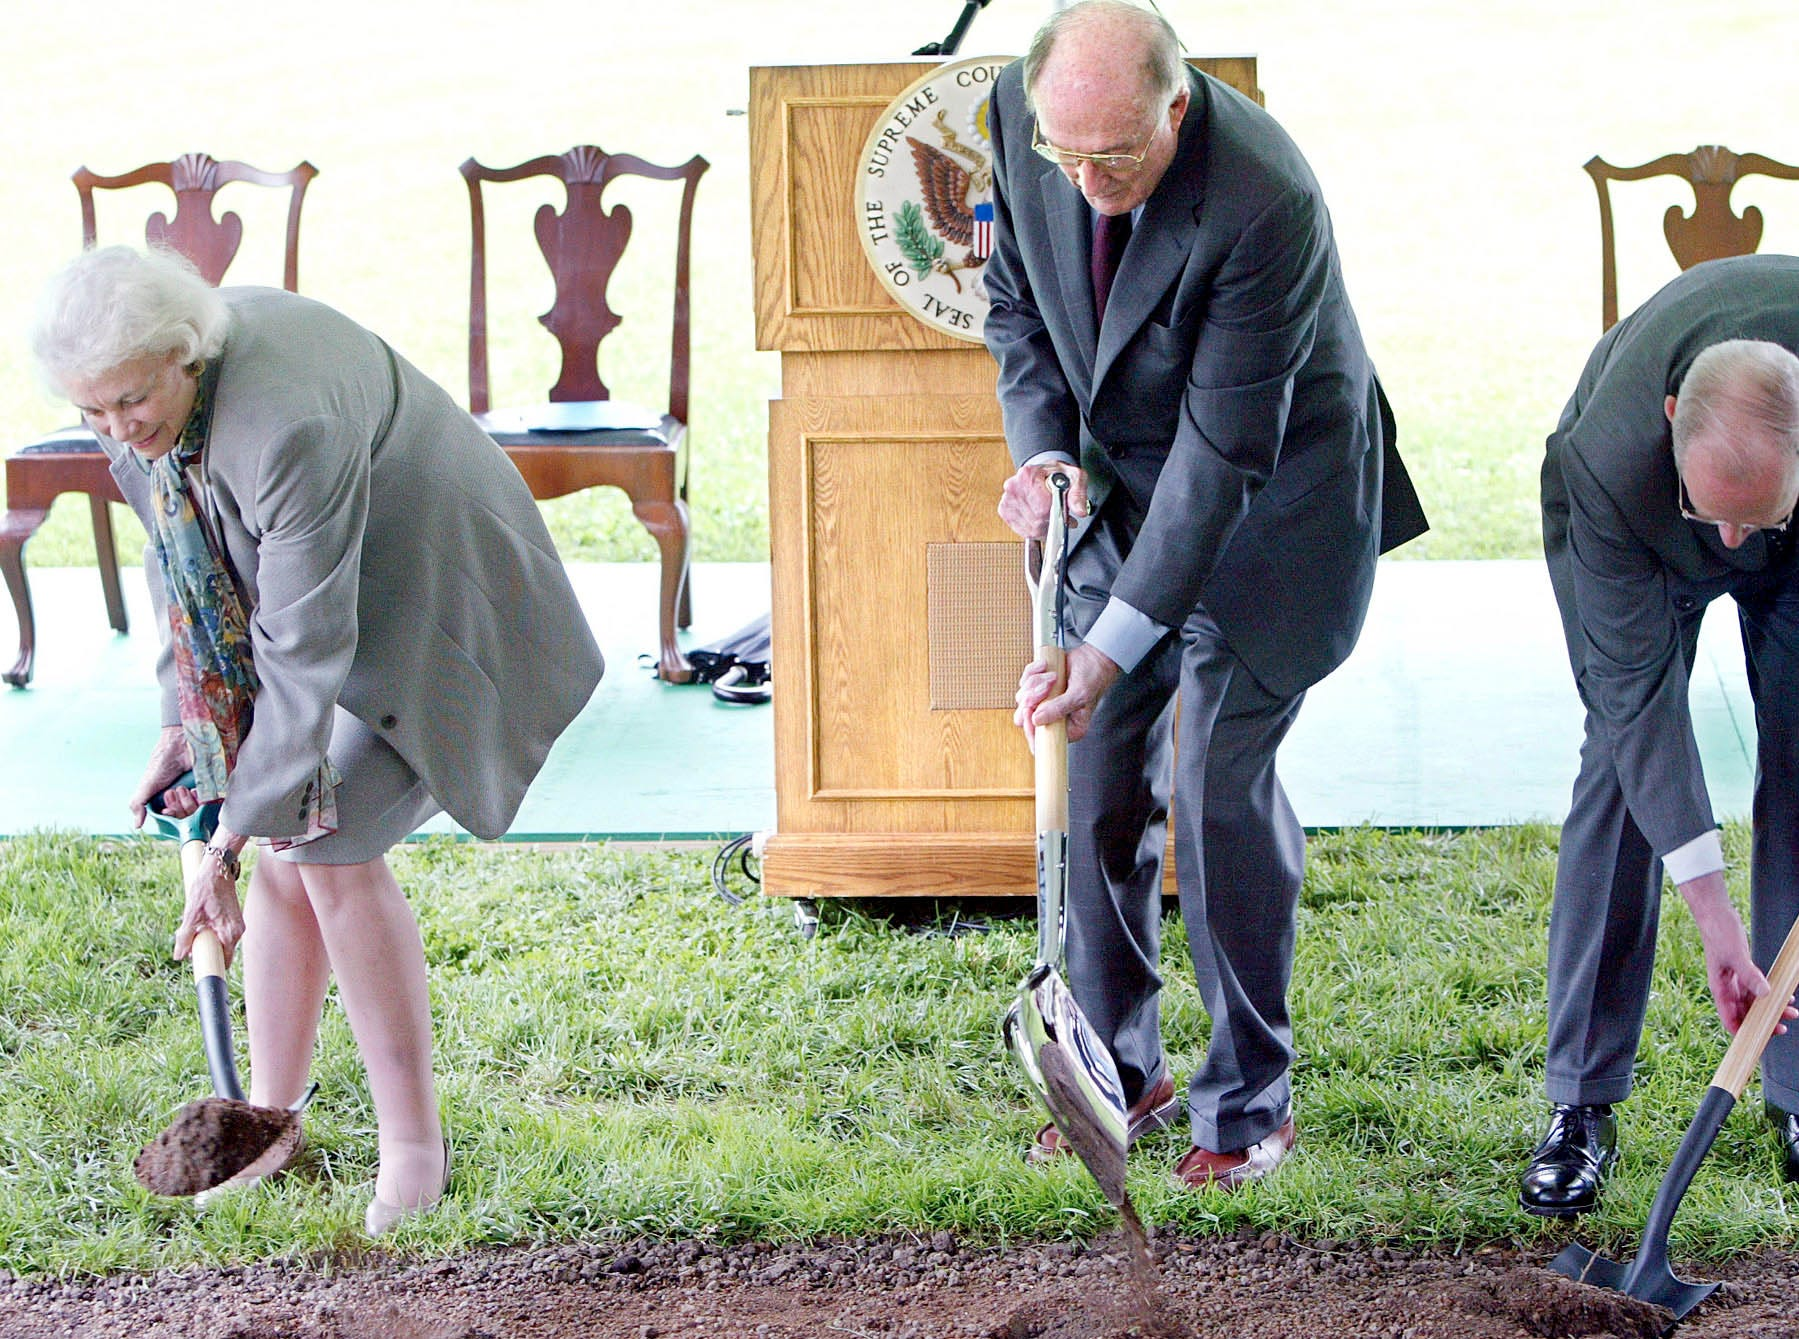 Supreme Court Associate Justice Sandra Day O'Connor, Chief Justice of the United States William H. Rehnquist  and Associate Justice Anthony M. Kennedy break ground on June 17, 2003, at a ceremony for a new section of the Supreme Court in Washington, D.C.